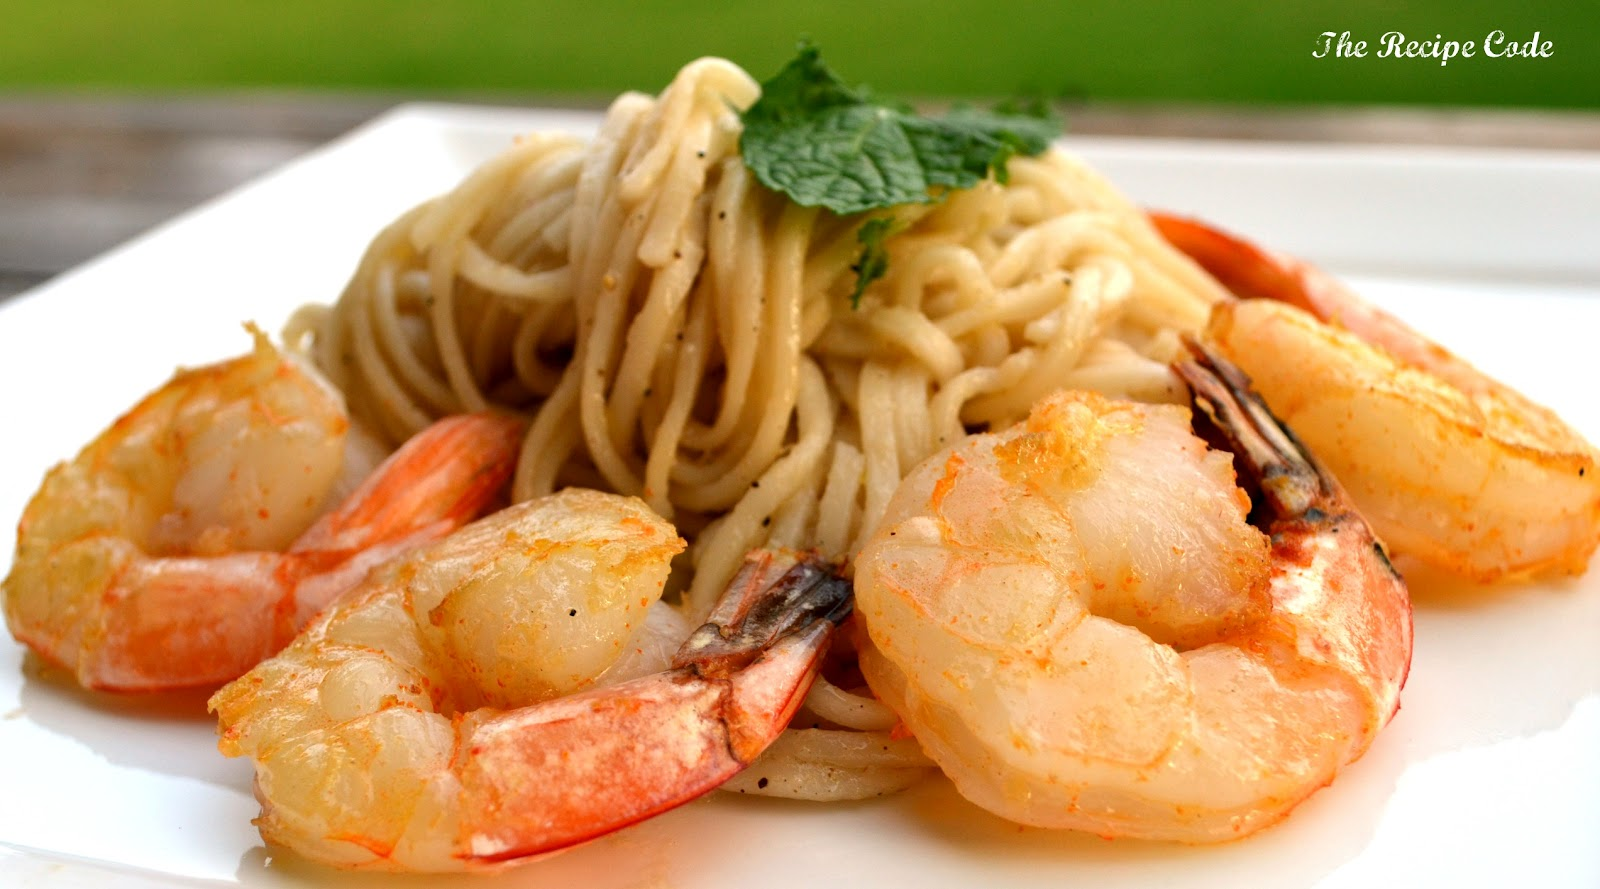 The Recipe Code: Crustacean Garlic Noodles